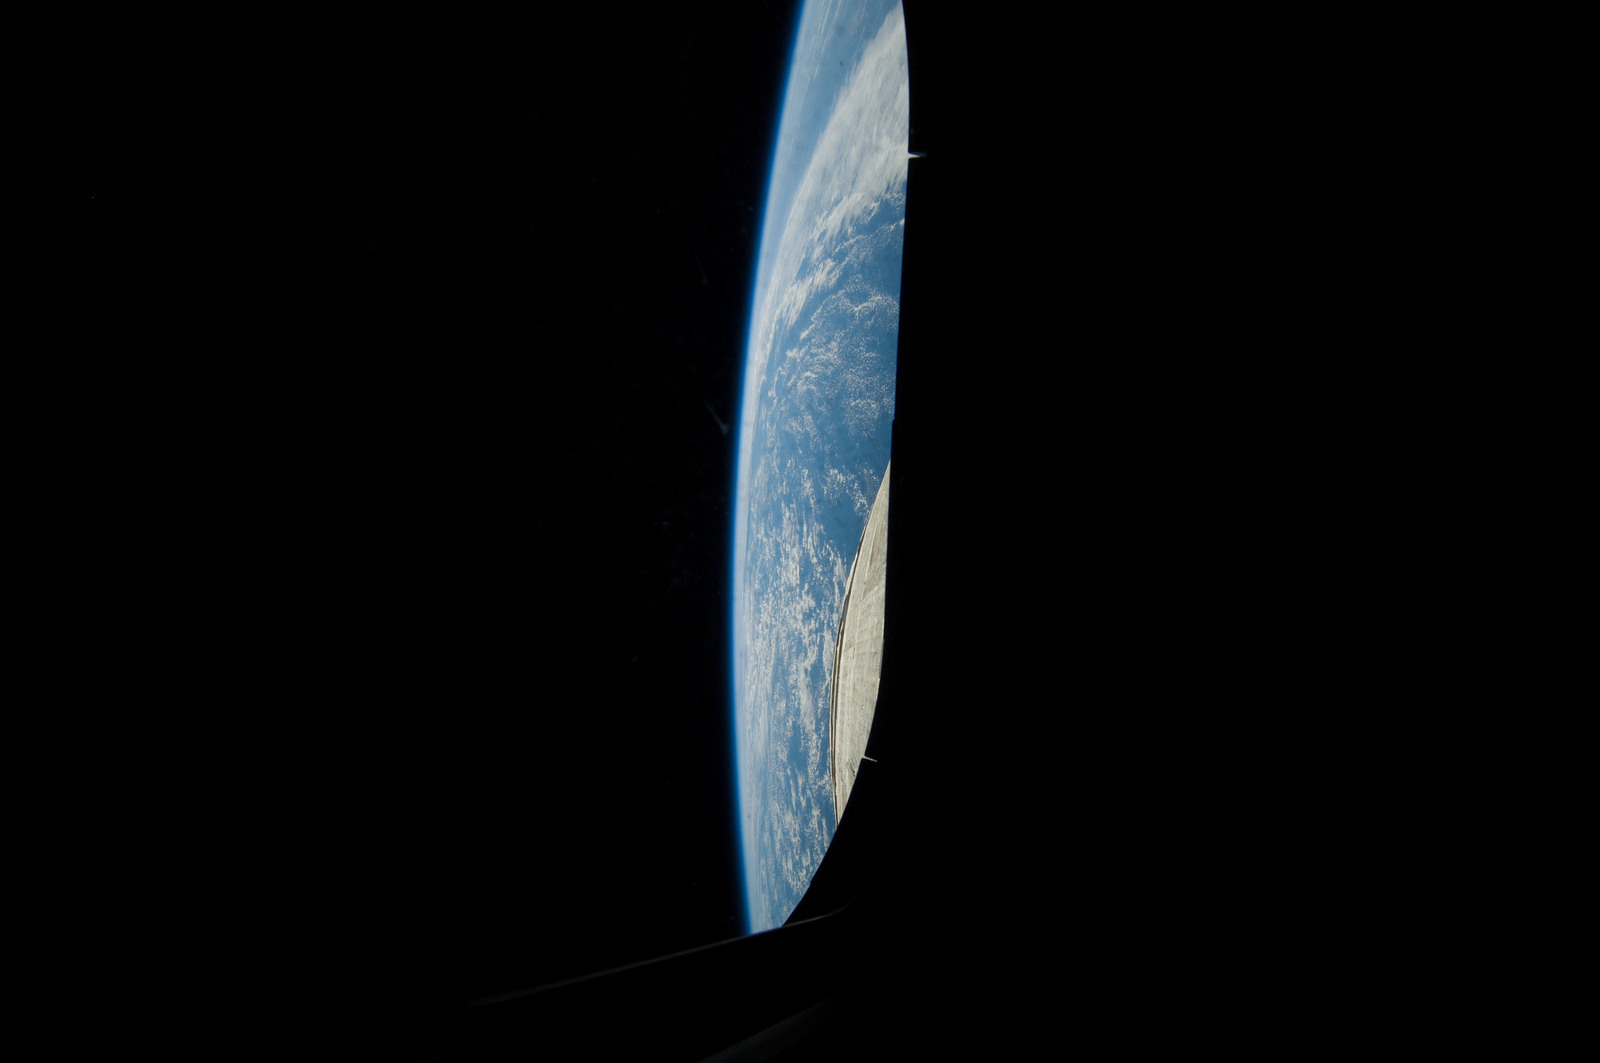 s133E006965 - STS-133 - Earth Observation taken by the STS-133 crew